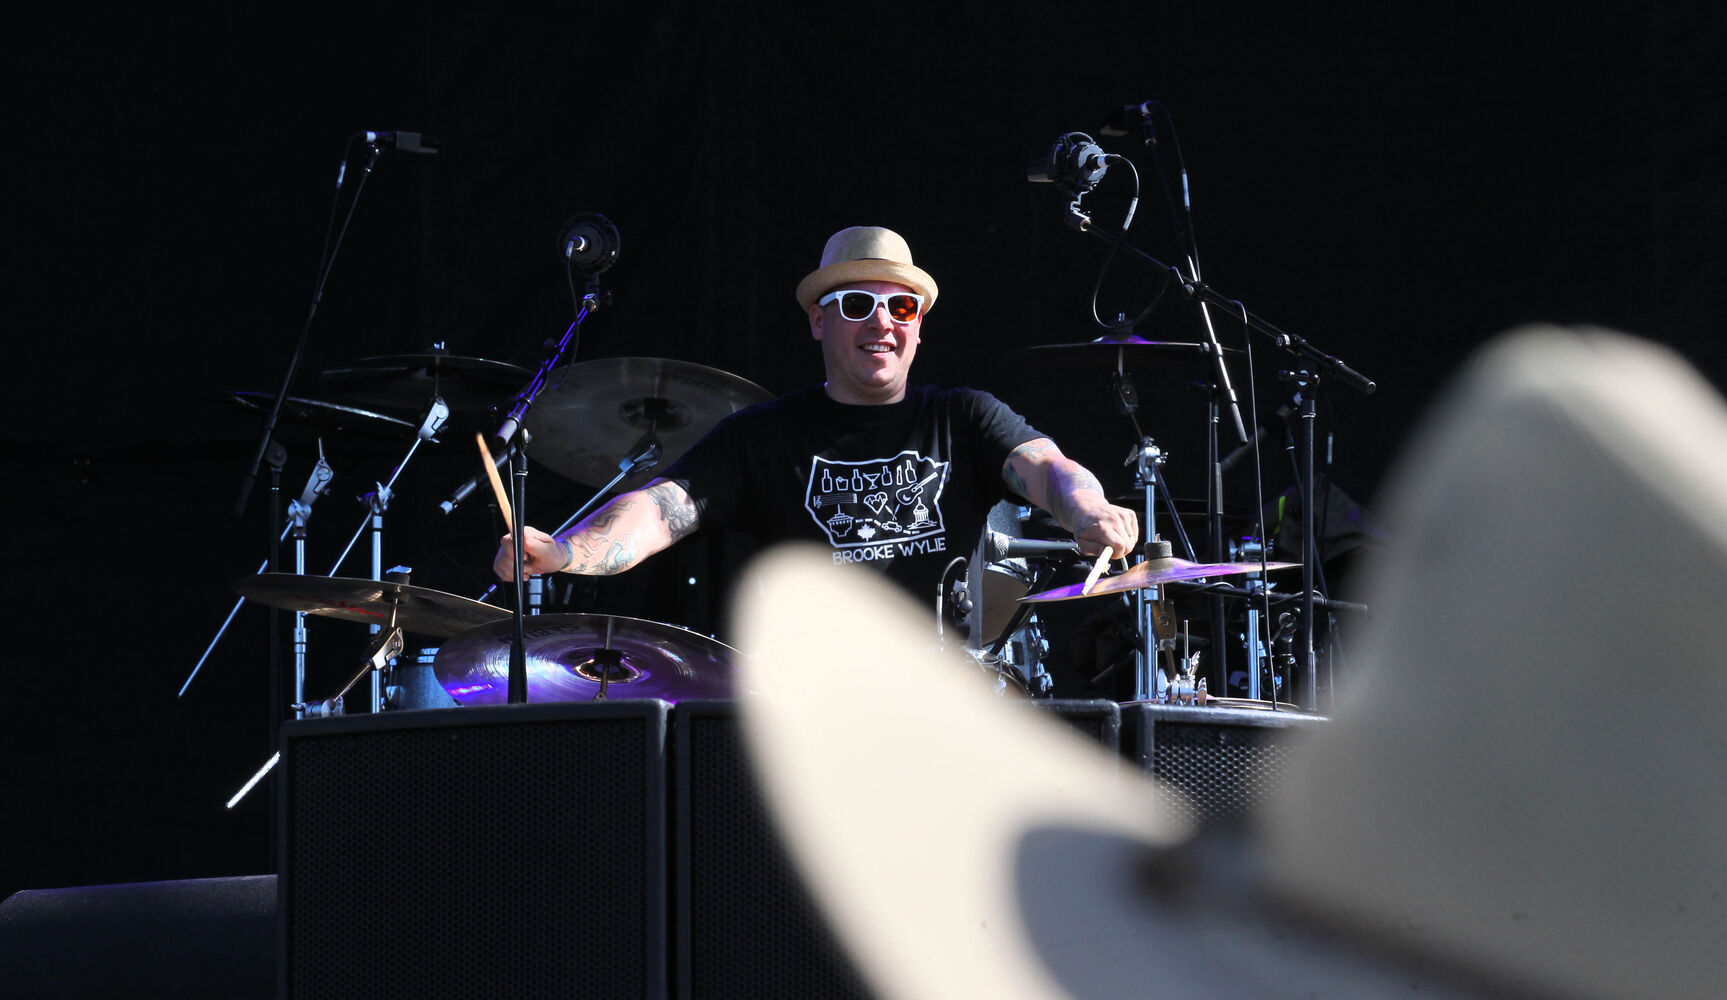 Emmet VanEtten, drummer with local blues band The Perpetrators, plays at the third annual Winnipeg BBQ & Blues Festival at Shaw Park Saturday. The festival takes place August 16th and 17th, and will feature the best in international, national and local blues performers along with the Winnipeg Free Press Pit Masters barbeque competition.